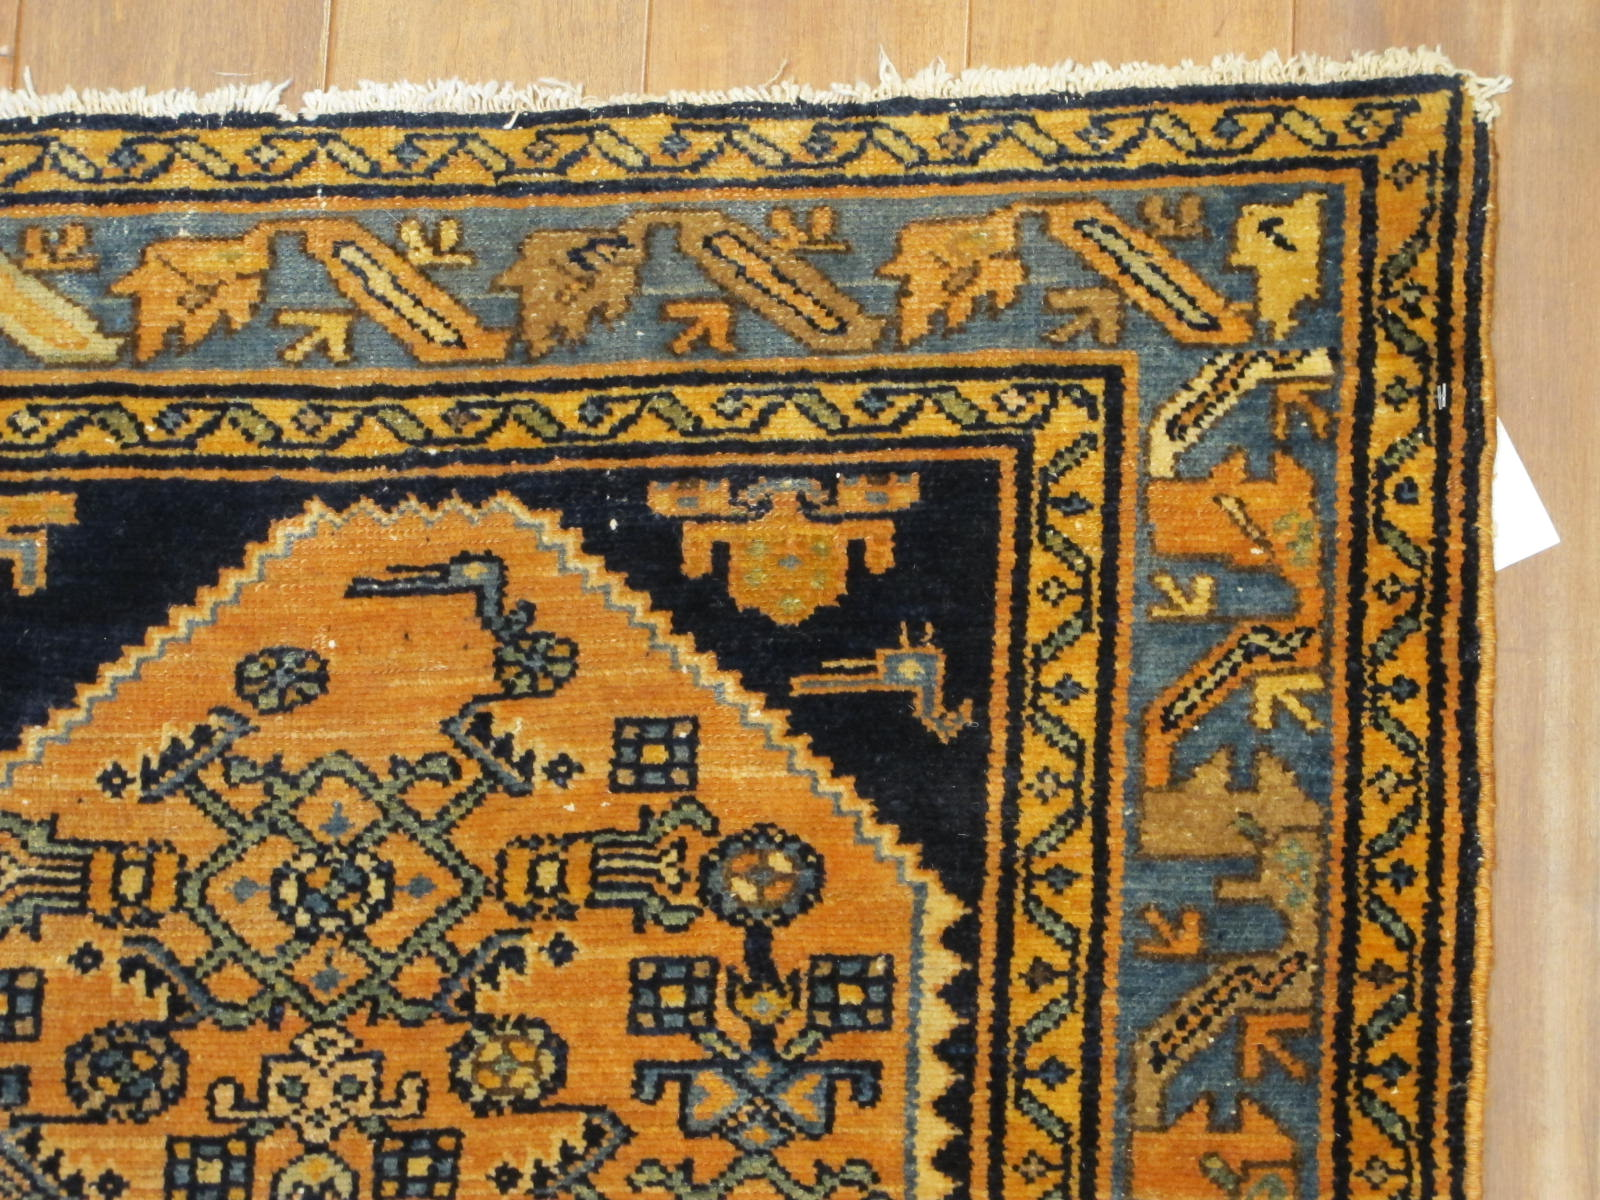 12813 persian malayer rug 4,1x6,4 (3)